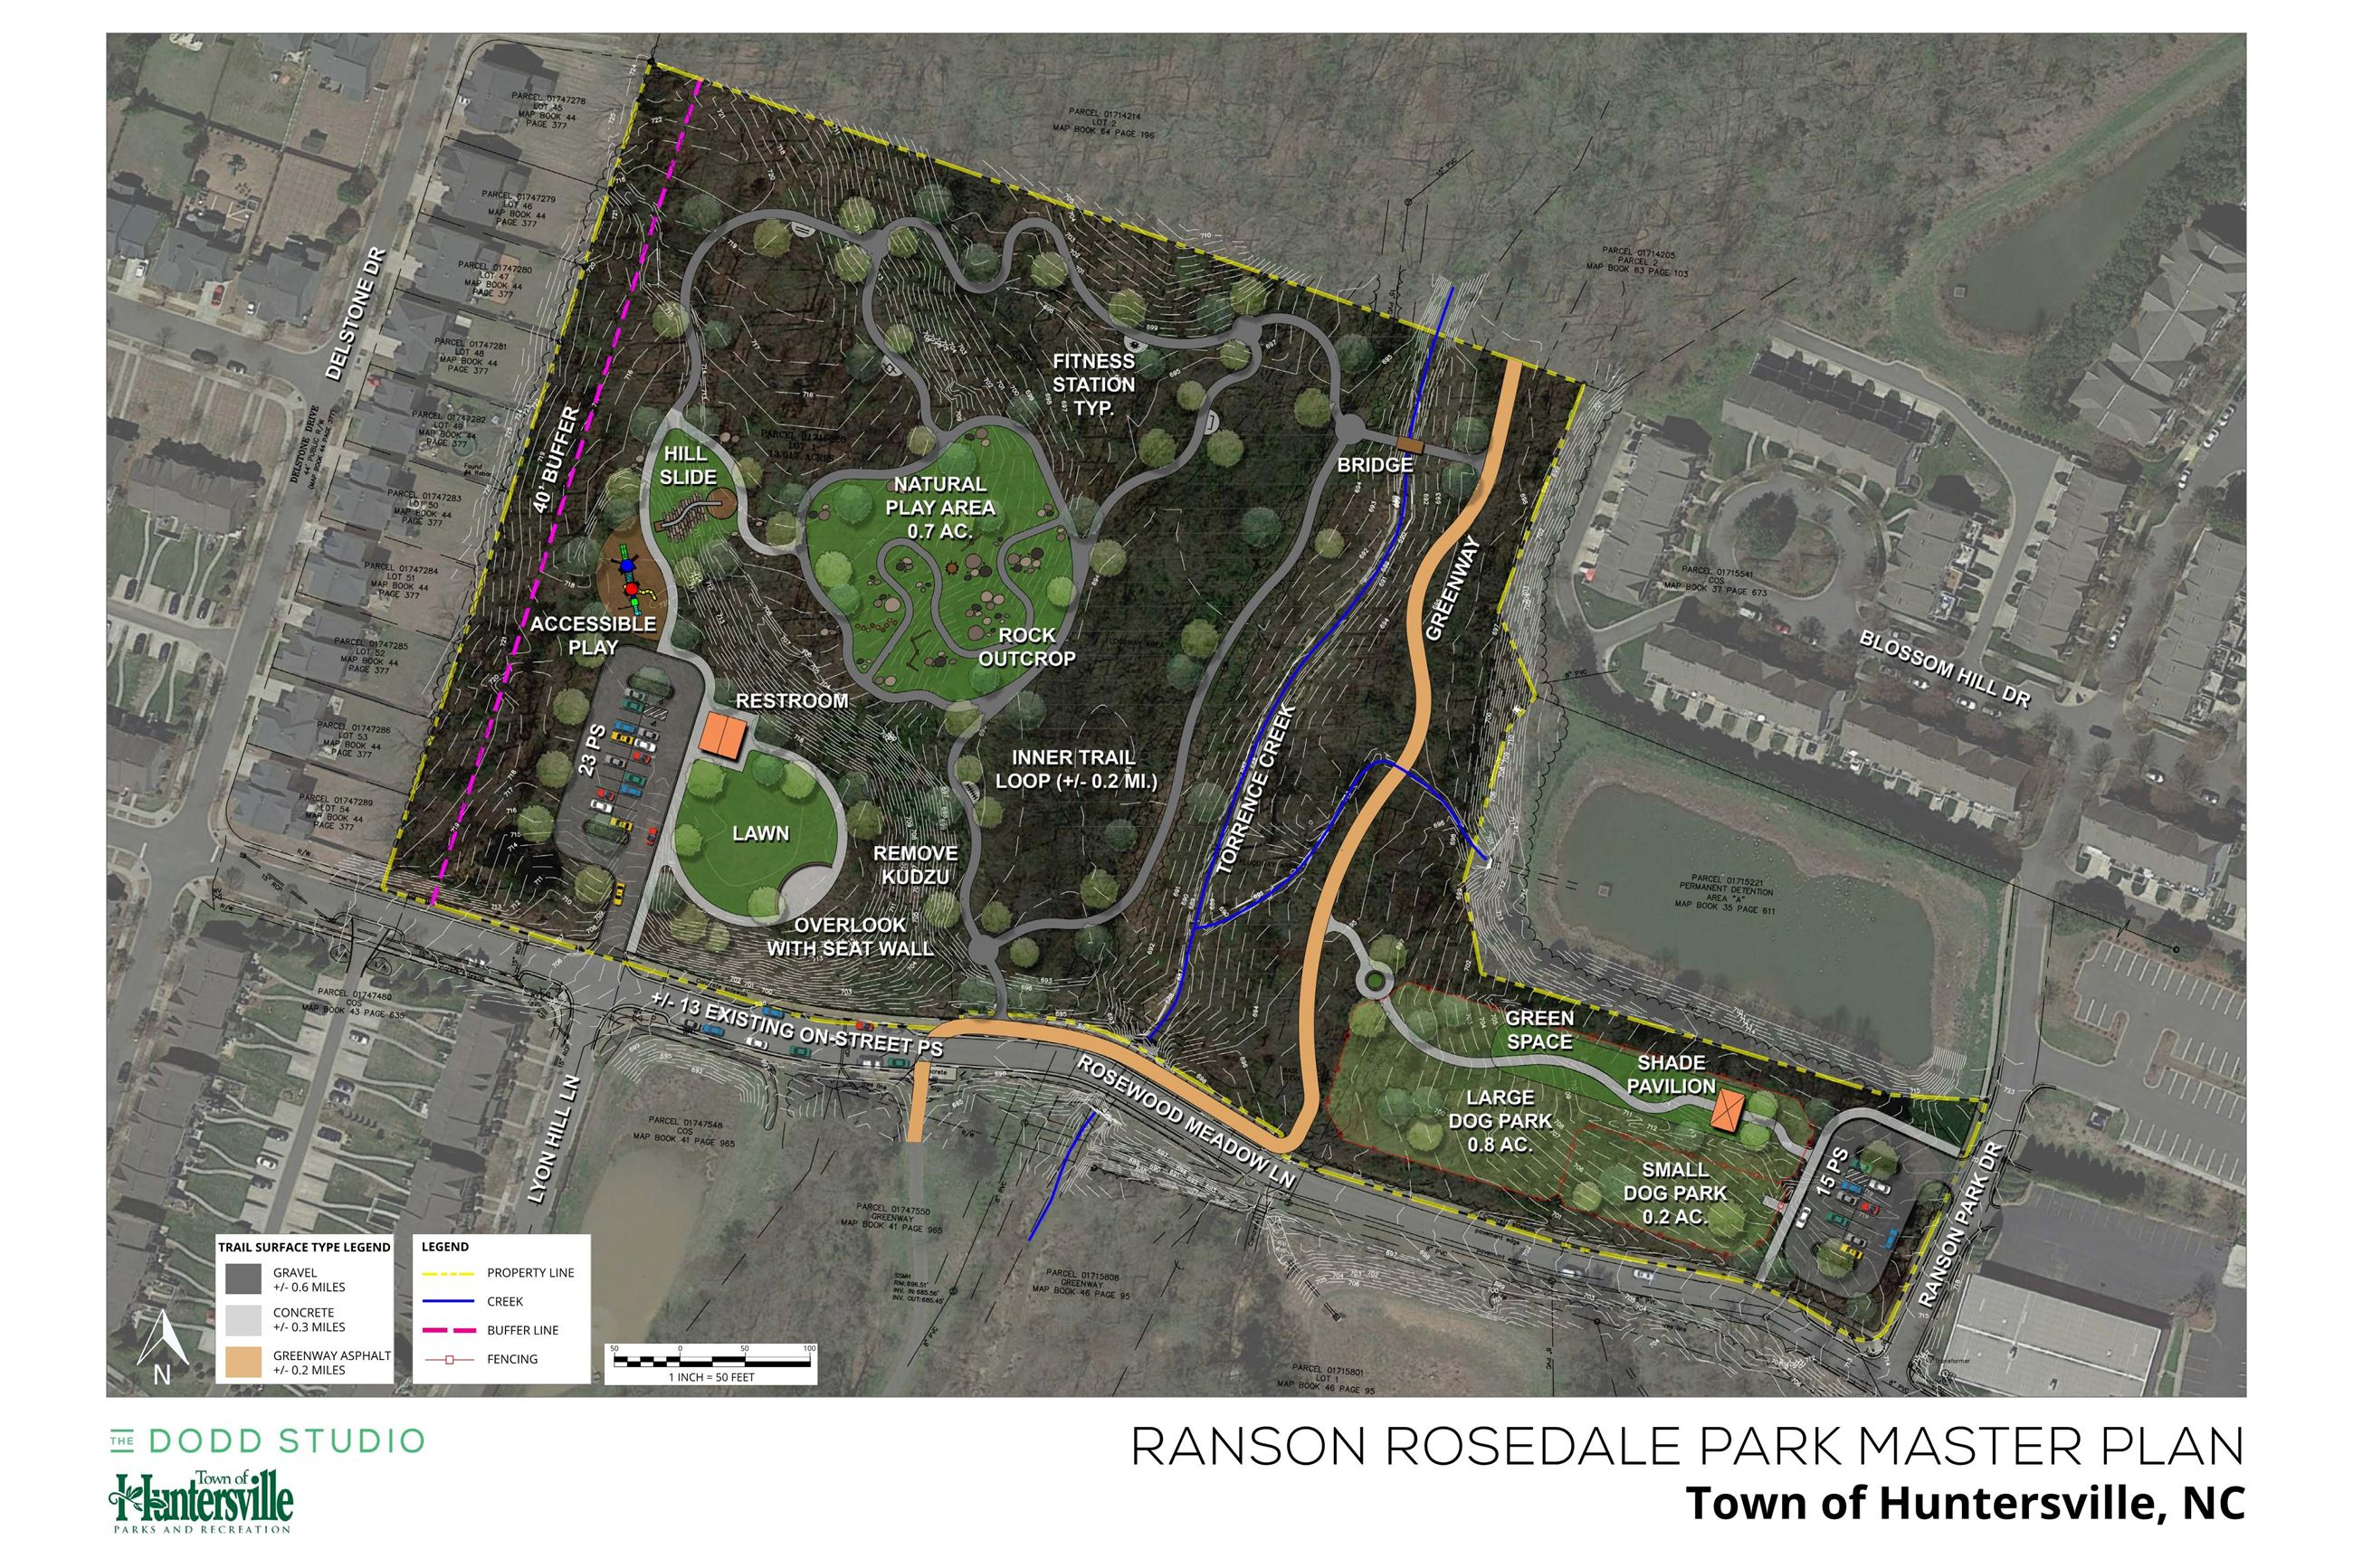 Revised Ranson Rosedale Master Plan Concept 12-9-2019 Final (1) Opens in new window